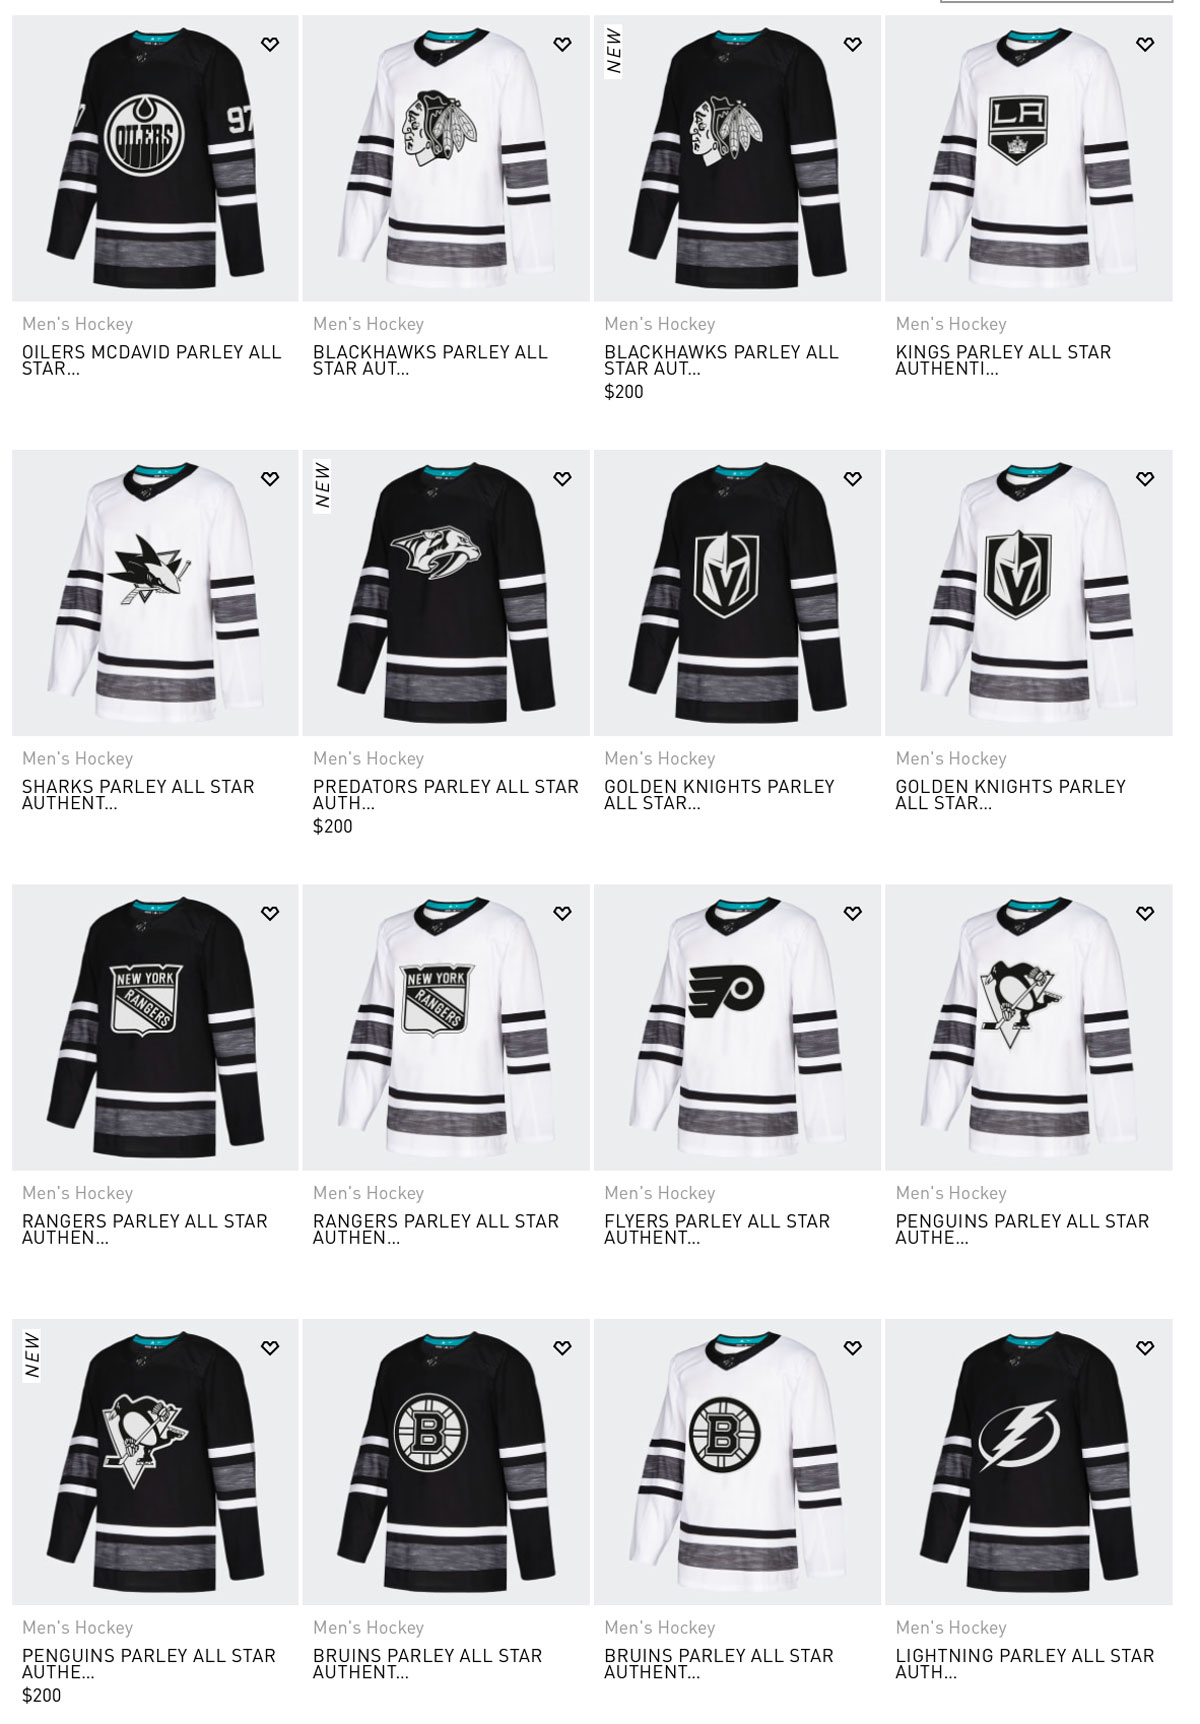 eef9d3e53d NHL's environmentally-conscious All-Star jerseys feature team logo ...